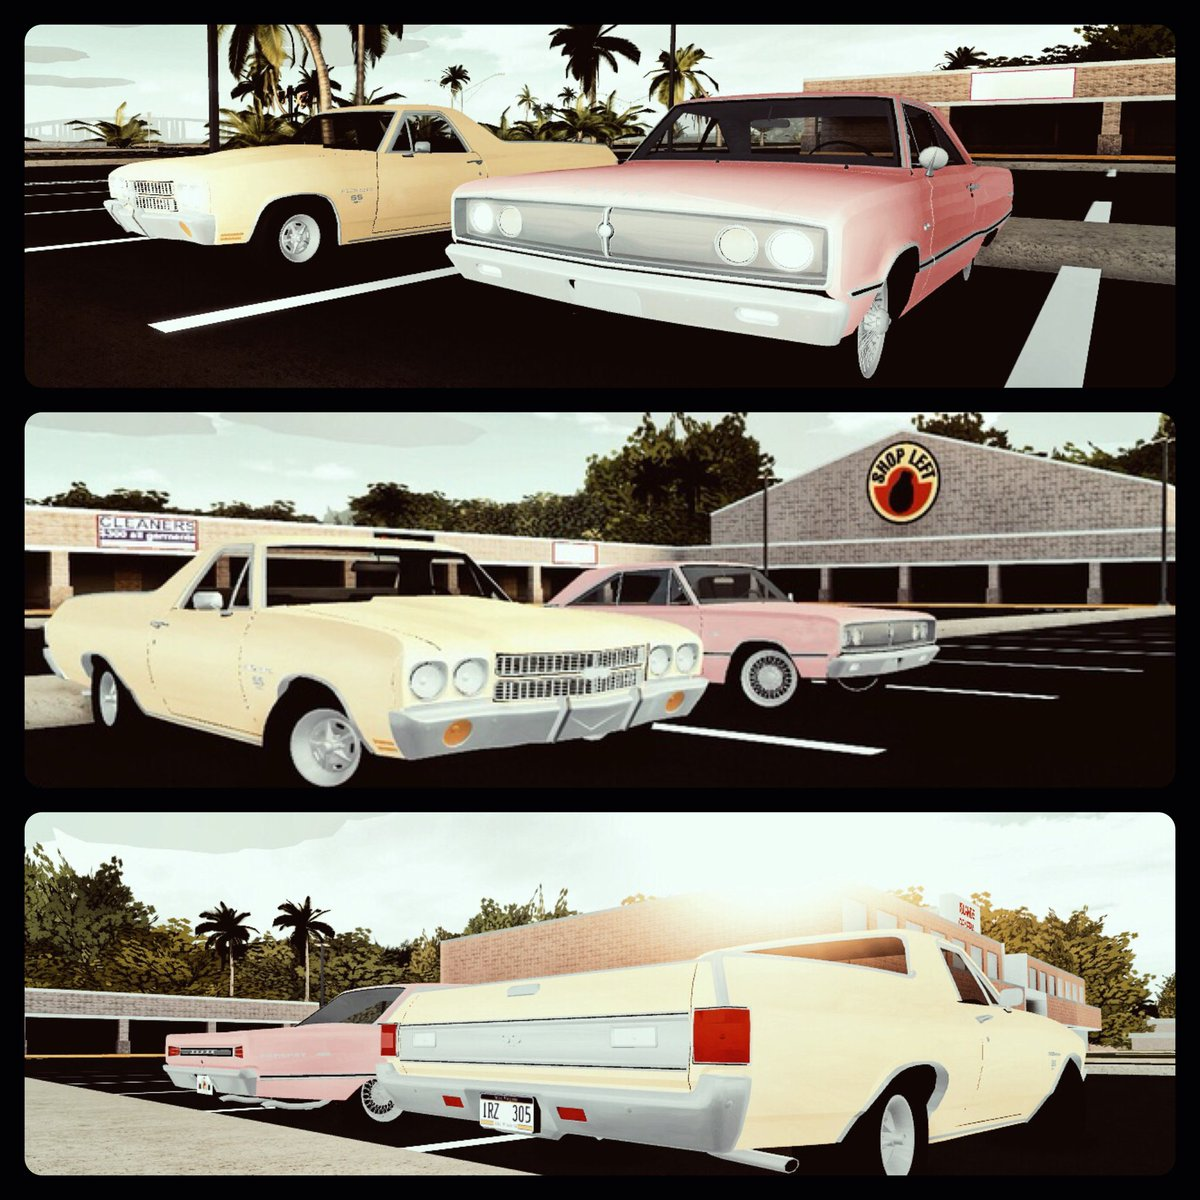 Roblox Ud Westover Island 3 Jonathan Golub On Twitter Thought I D Do A Retro Styled Photo Shoot With The 1970 Chevy El Camino Ss And The 1967 Dodge Coronet In Ud Westover Islands Ultimatedriving Roblox Udu Videogame